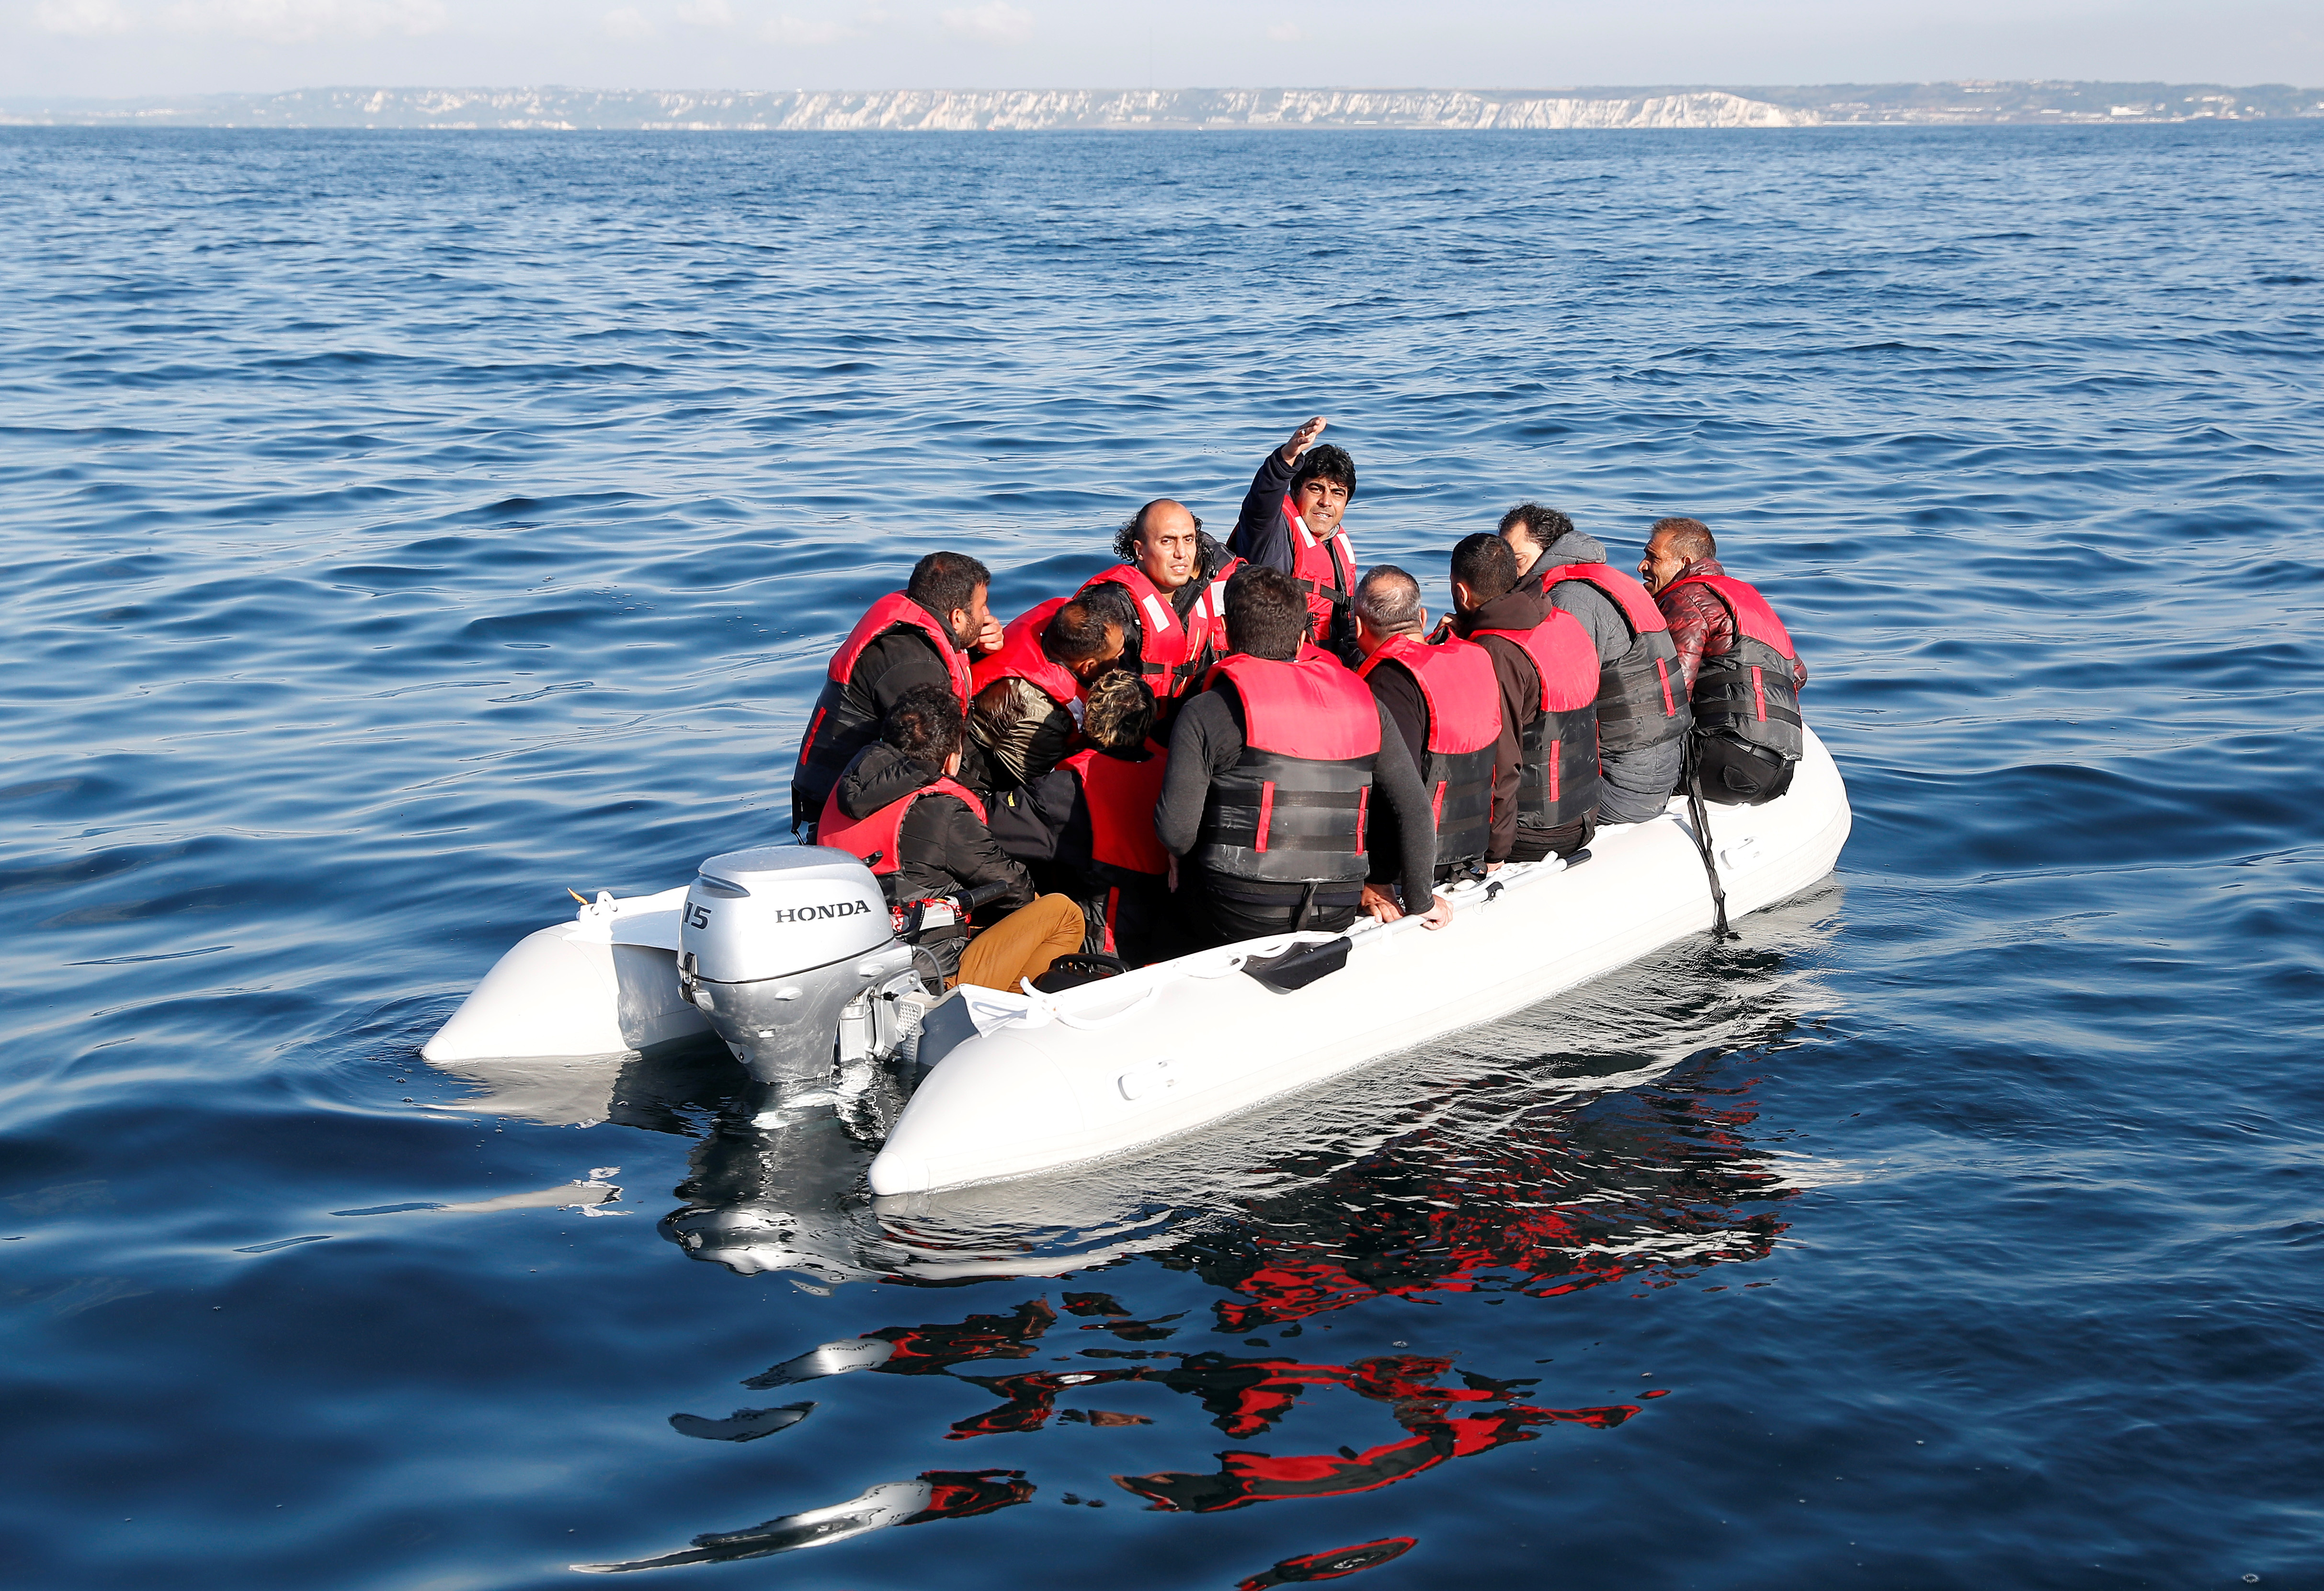 Migrants who launched from the coast of northern France cross the English Channel in an inflatable boat near Dover, Britain, August 4, 2021. Picture taken August 4, 2021.  REUTERS/Peter Nicholls